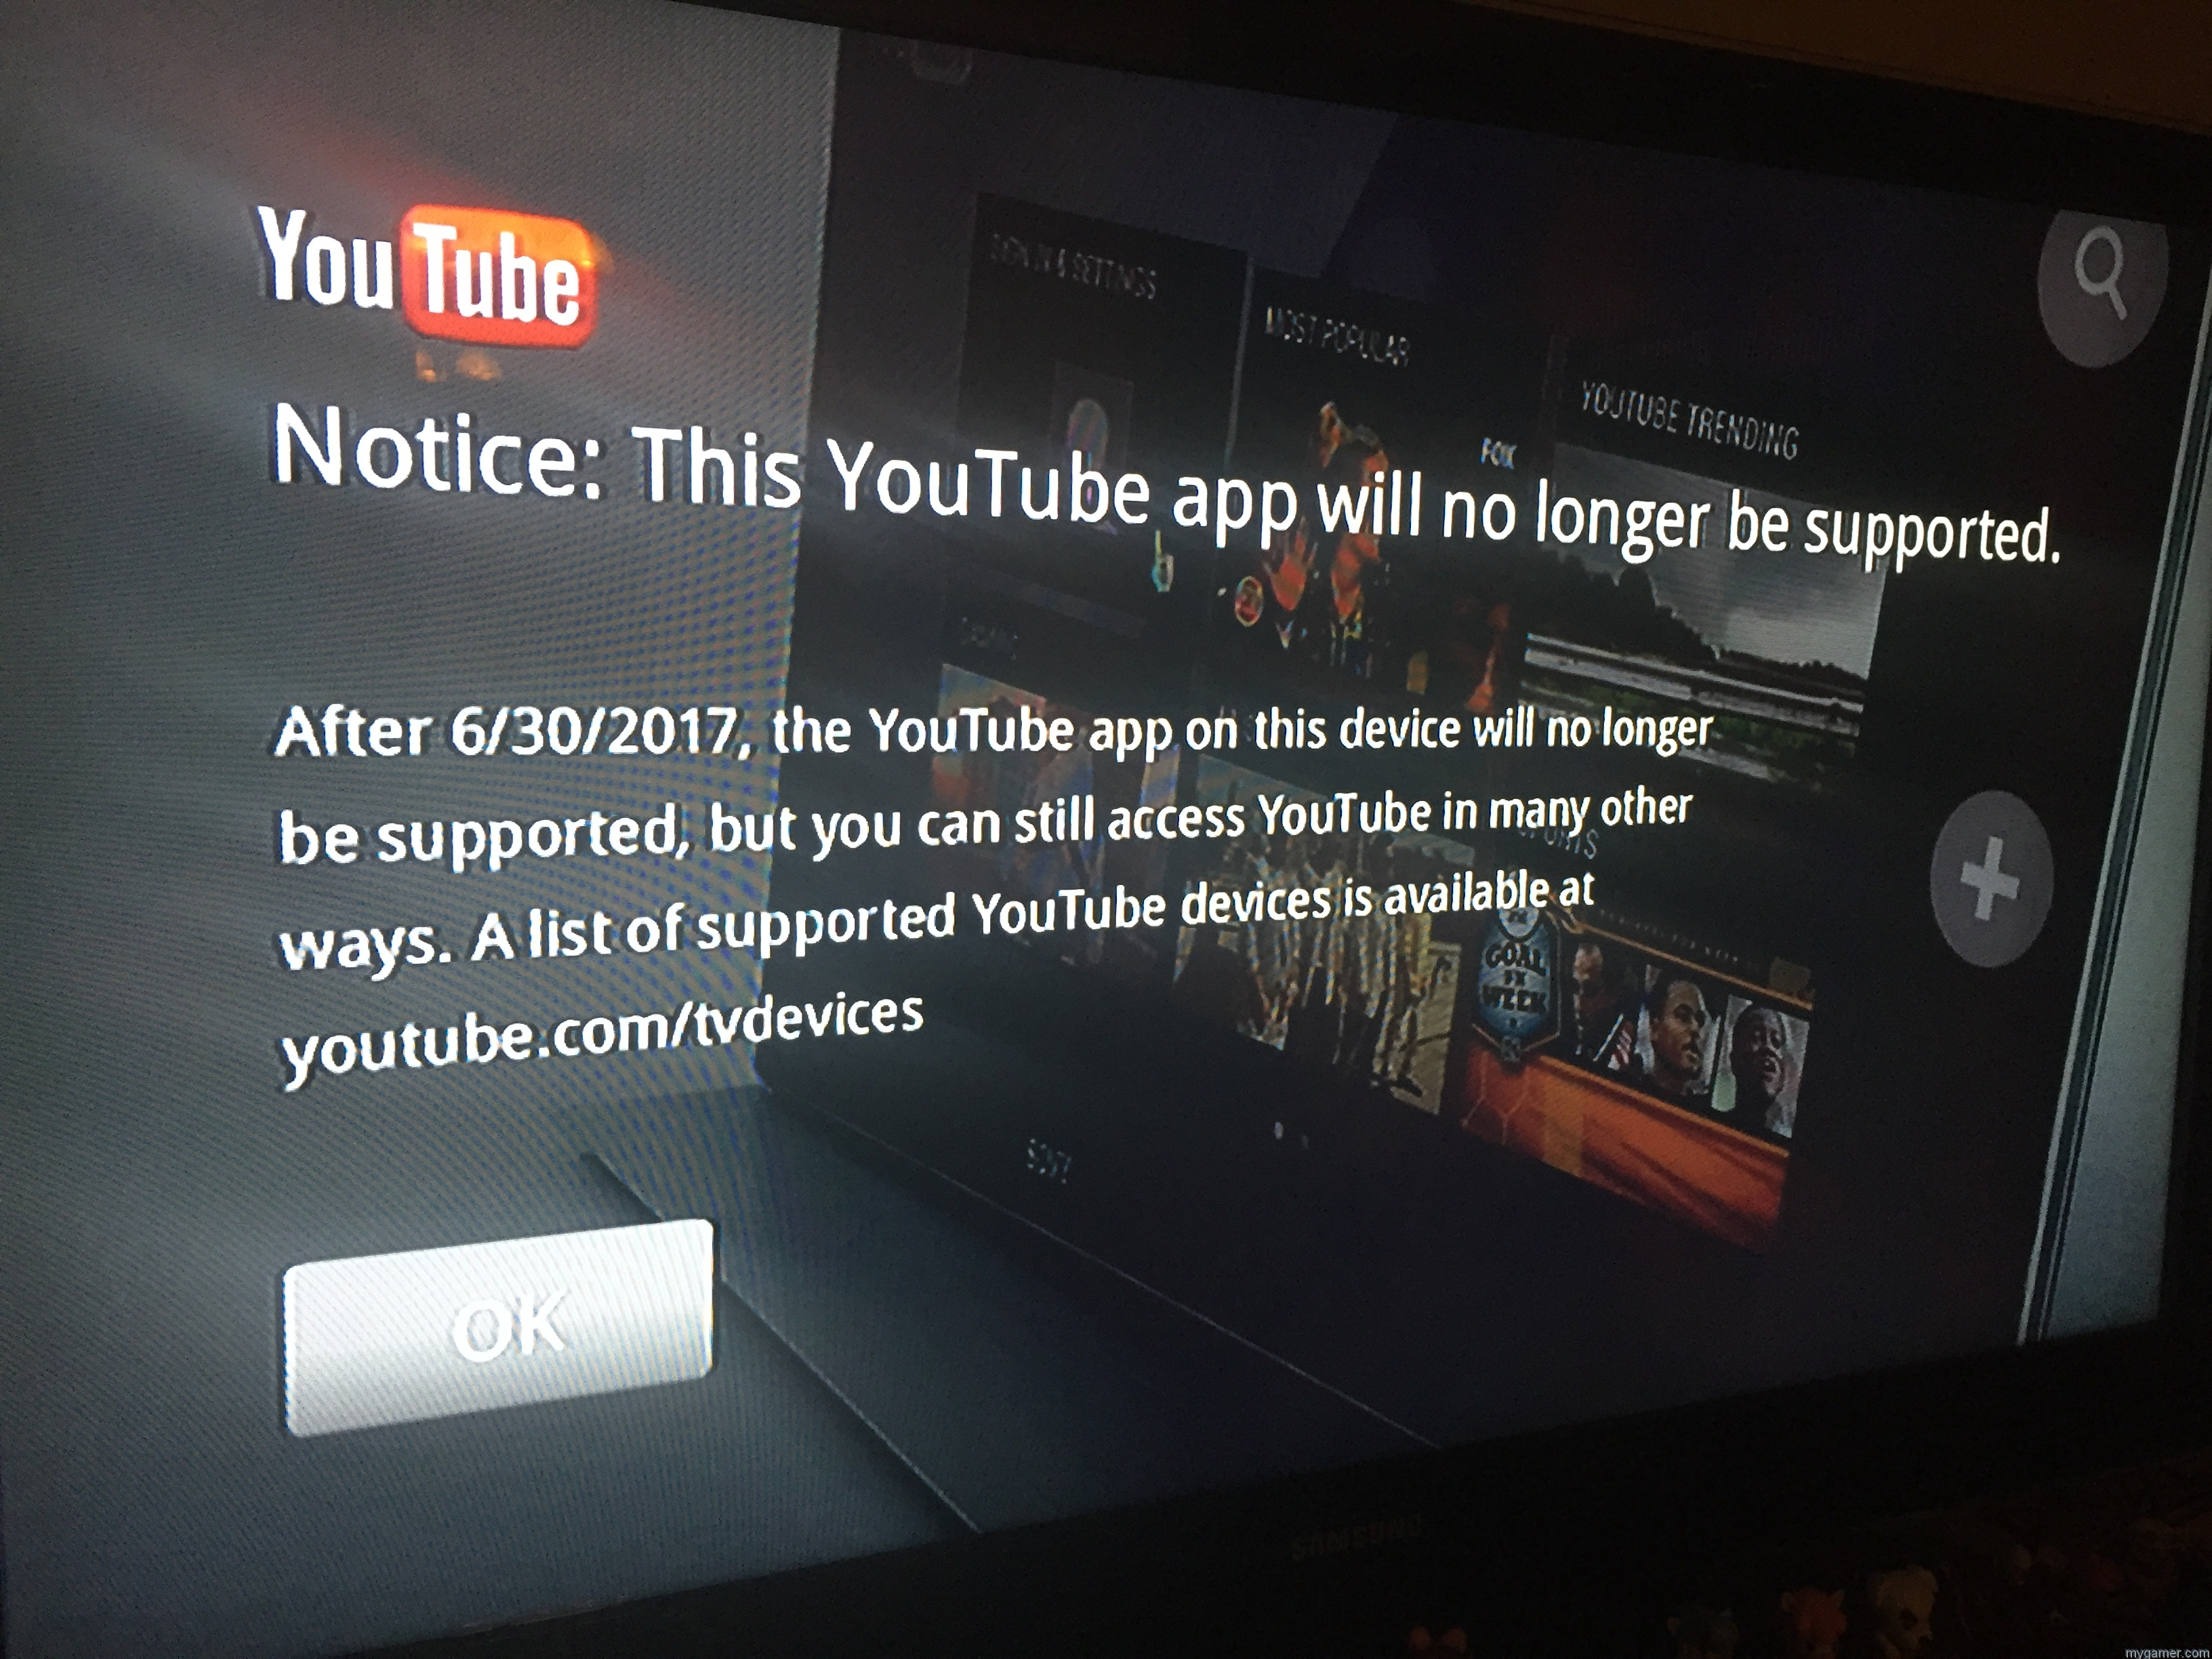 Wii's YouTube App Ending June 2017 Wii's YouTube App Ending June 2017 Wii YouTube Cancelation